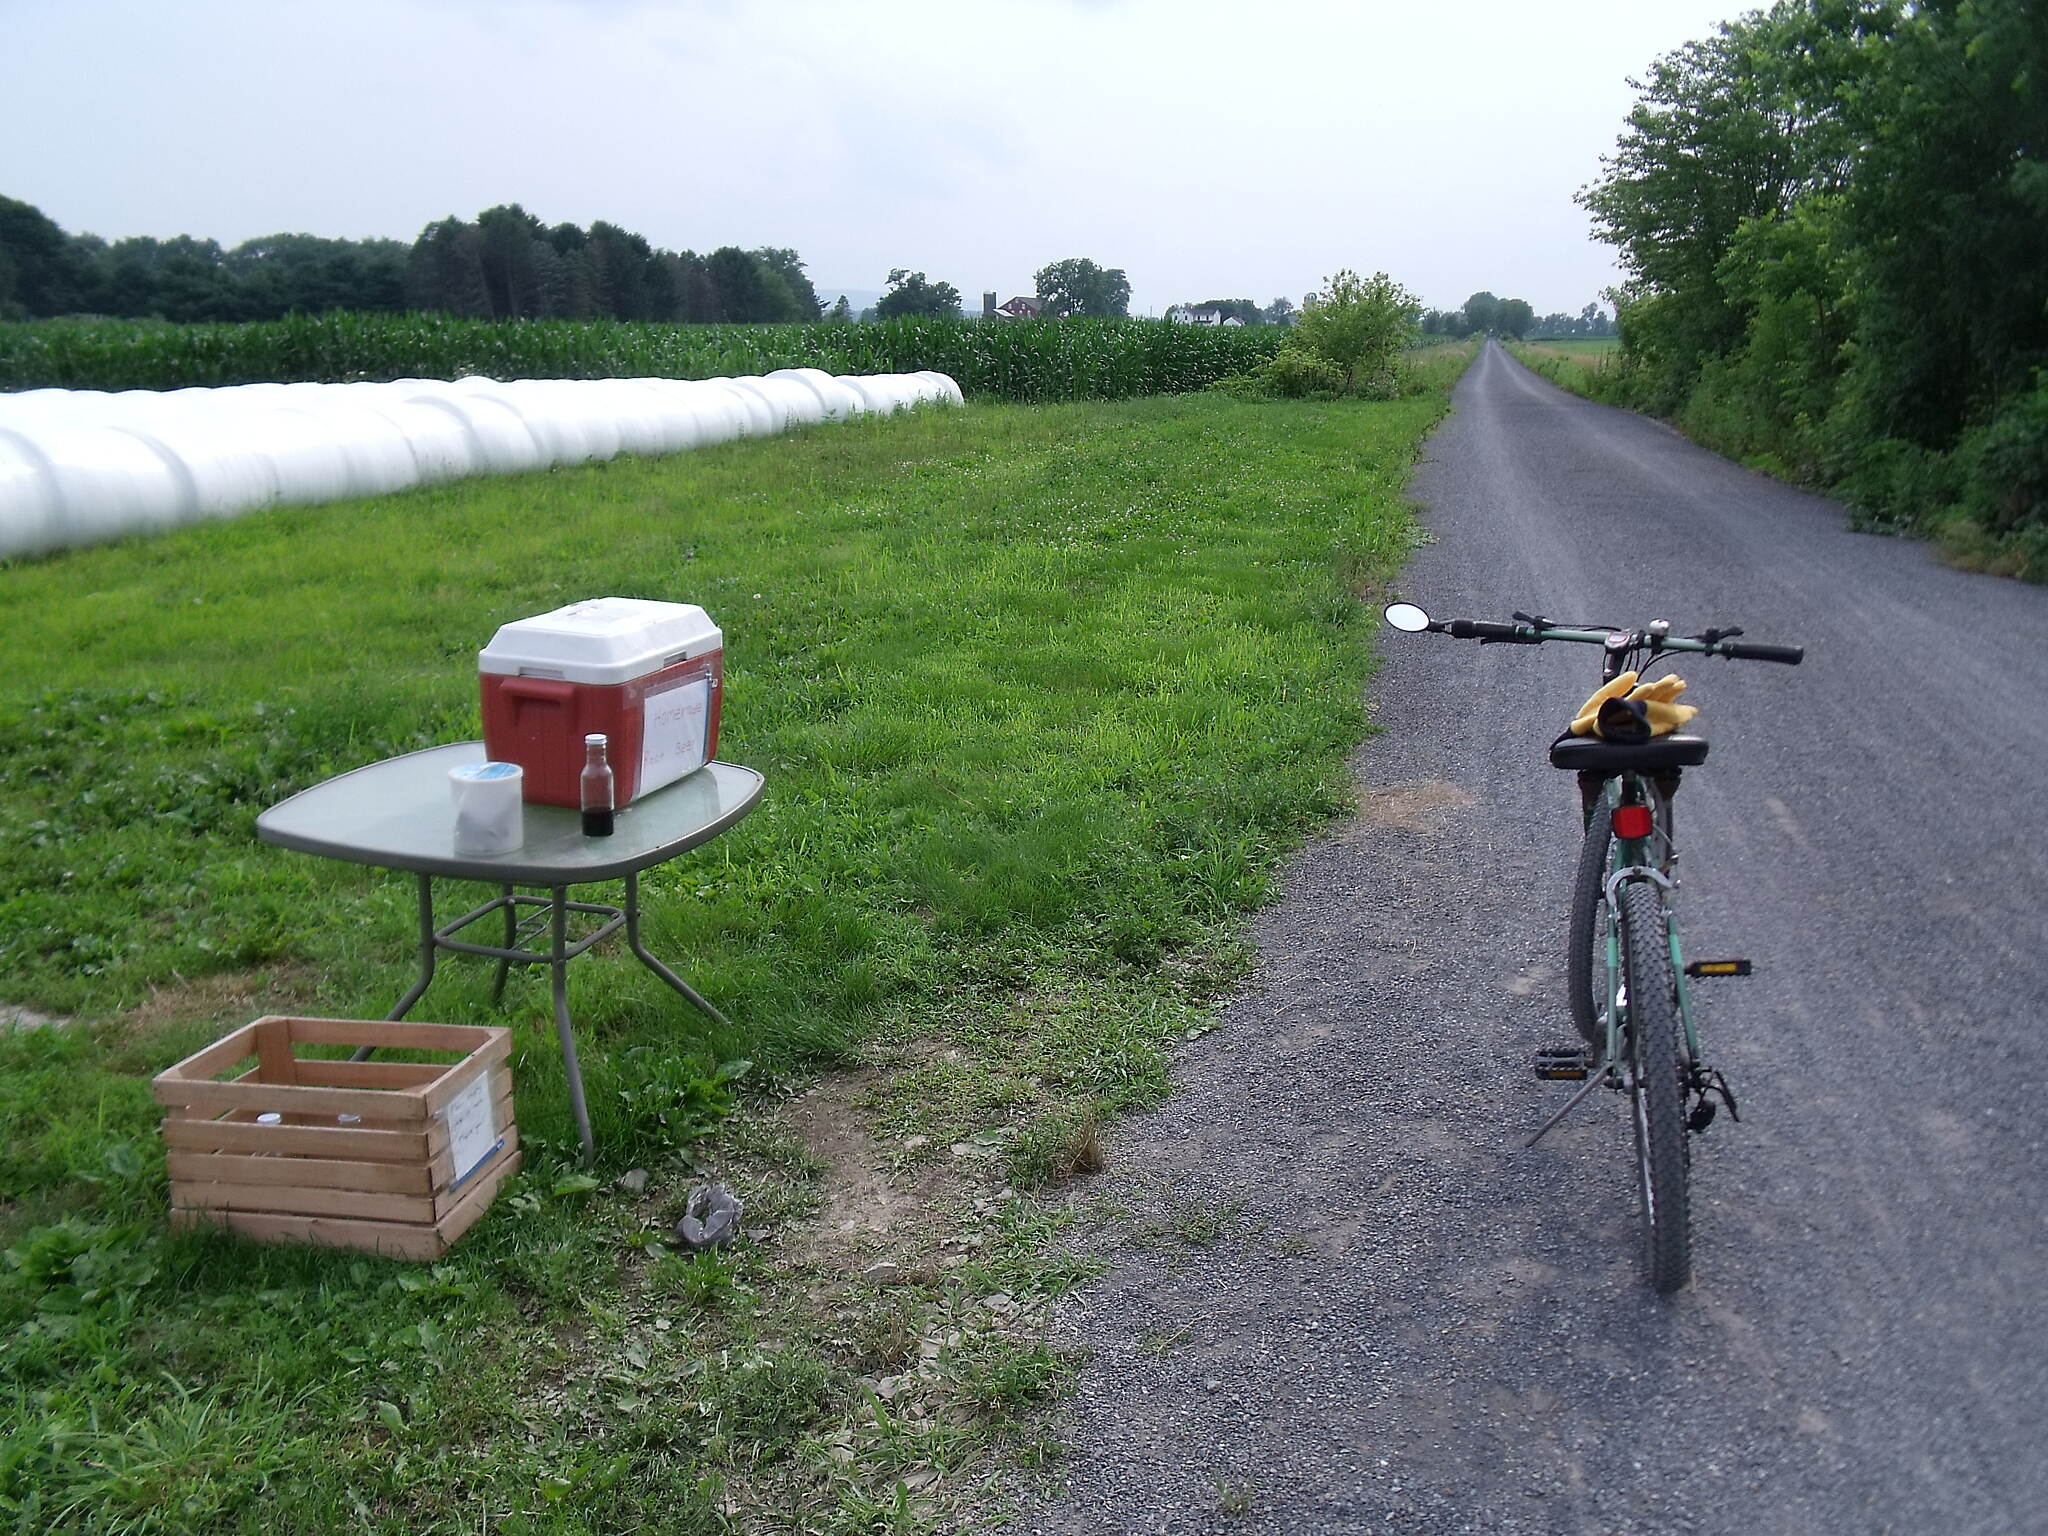 Buffalo Valley Rail Trail The Homemade Root Beer Stand Ice cold Amish made homemade root beer is available every day from May through September in small bottles or half-gallon jugs at the farm at Trail Milepost 4.